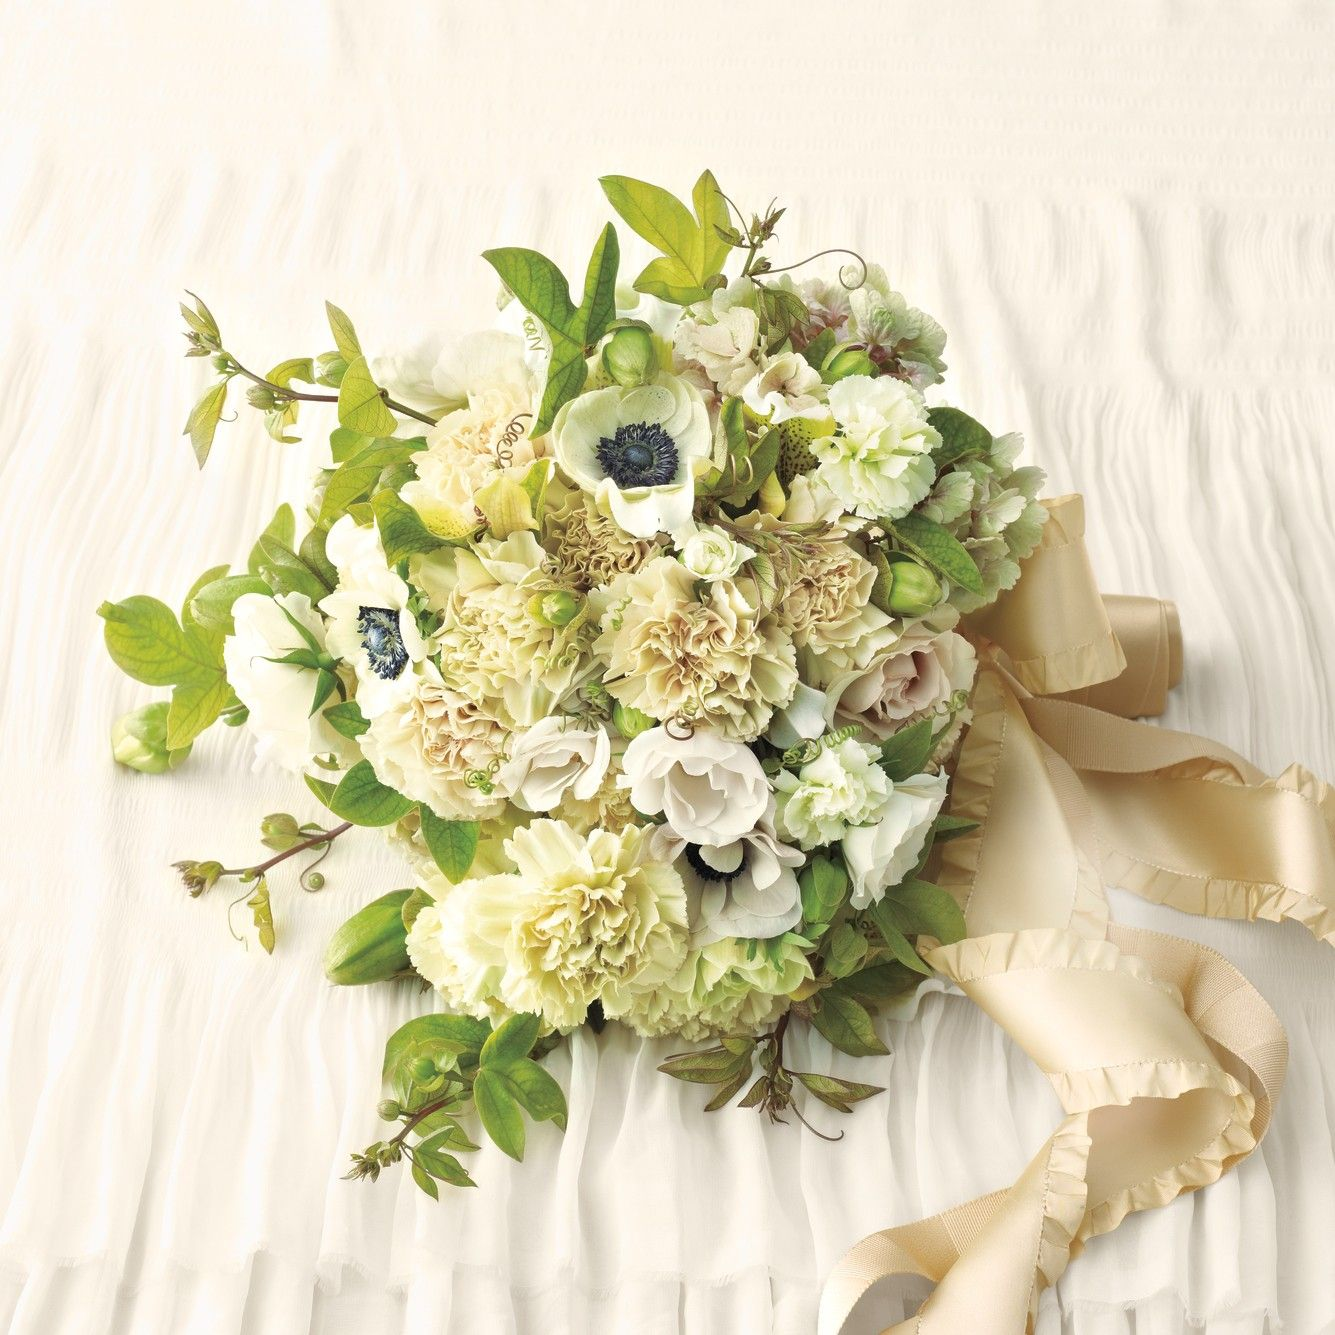 Wedding Flowers Centerpieces Cost: Elegant And Affordable Wedding Flower Ideas We Love